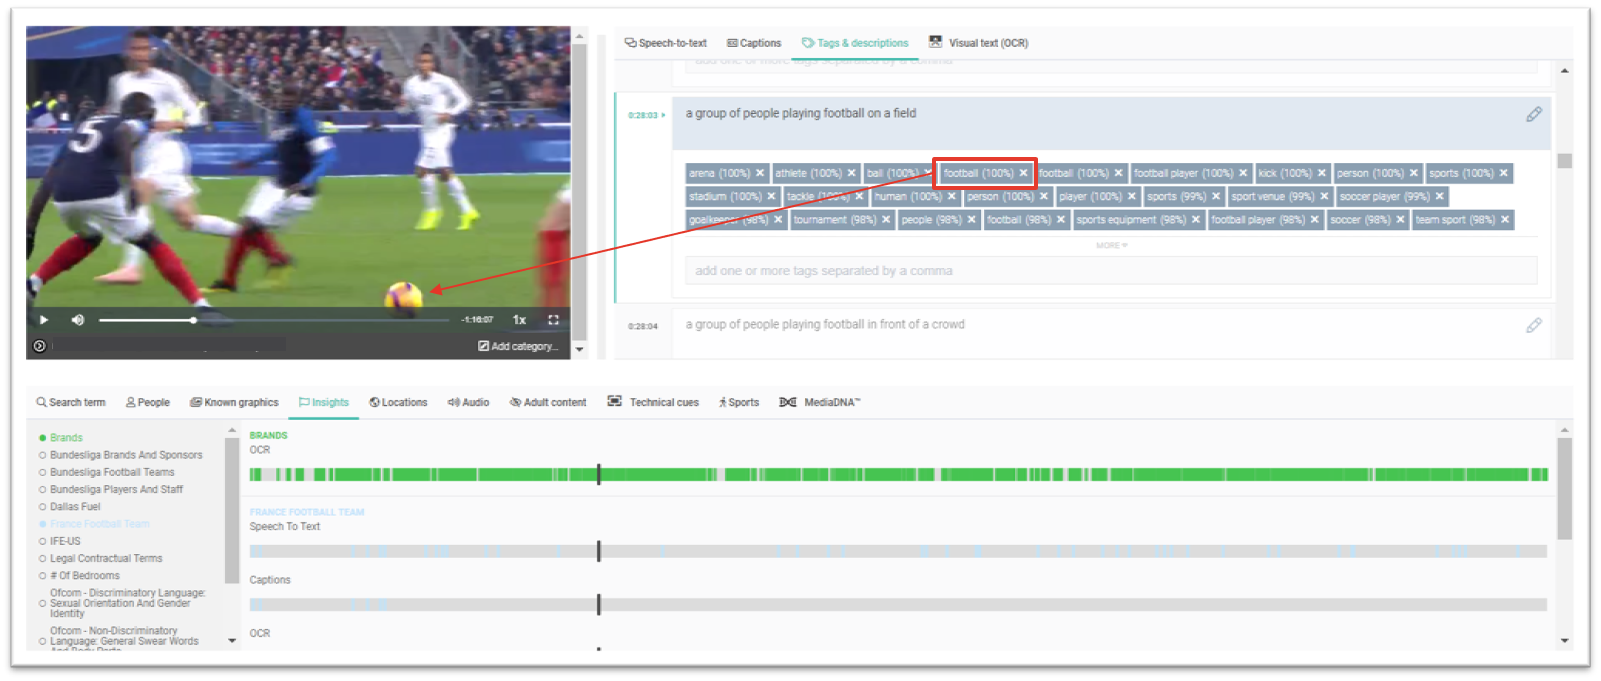 Visual Tags - Identify important scenes in the sports match or interview using visual tags & descriptions.